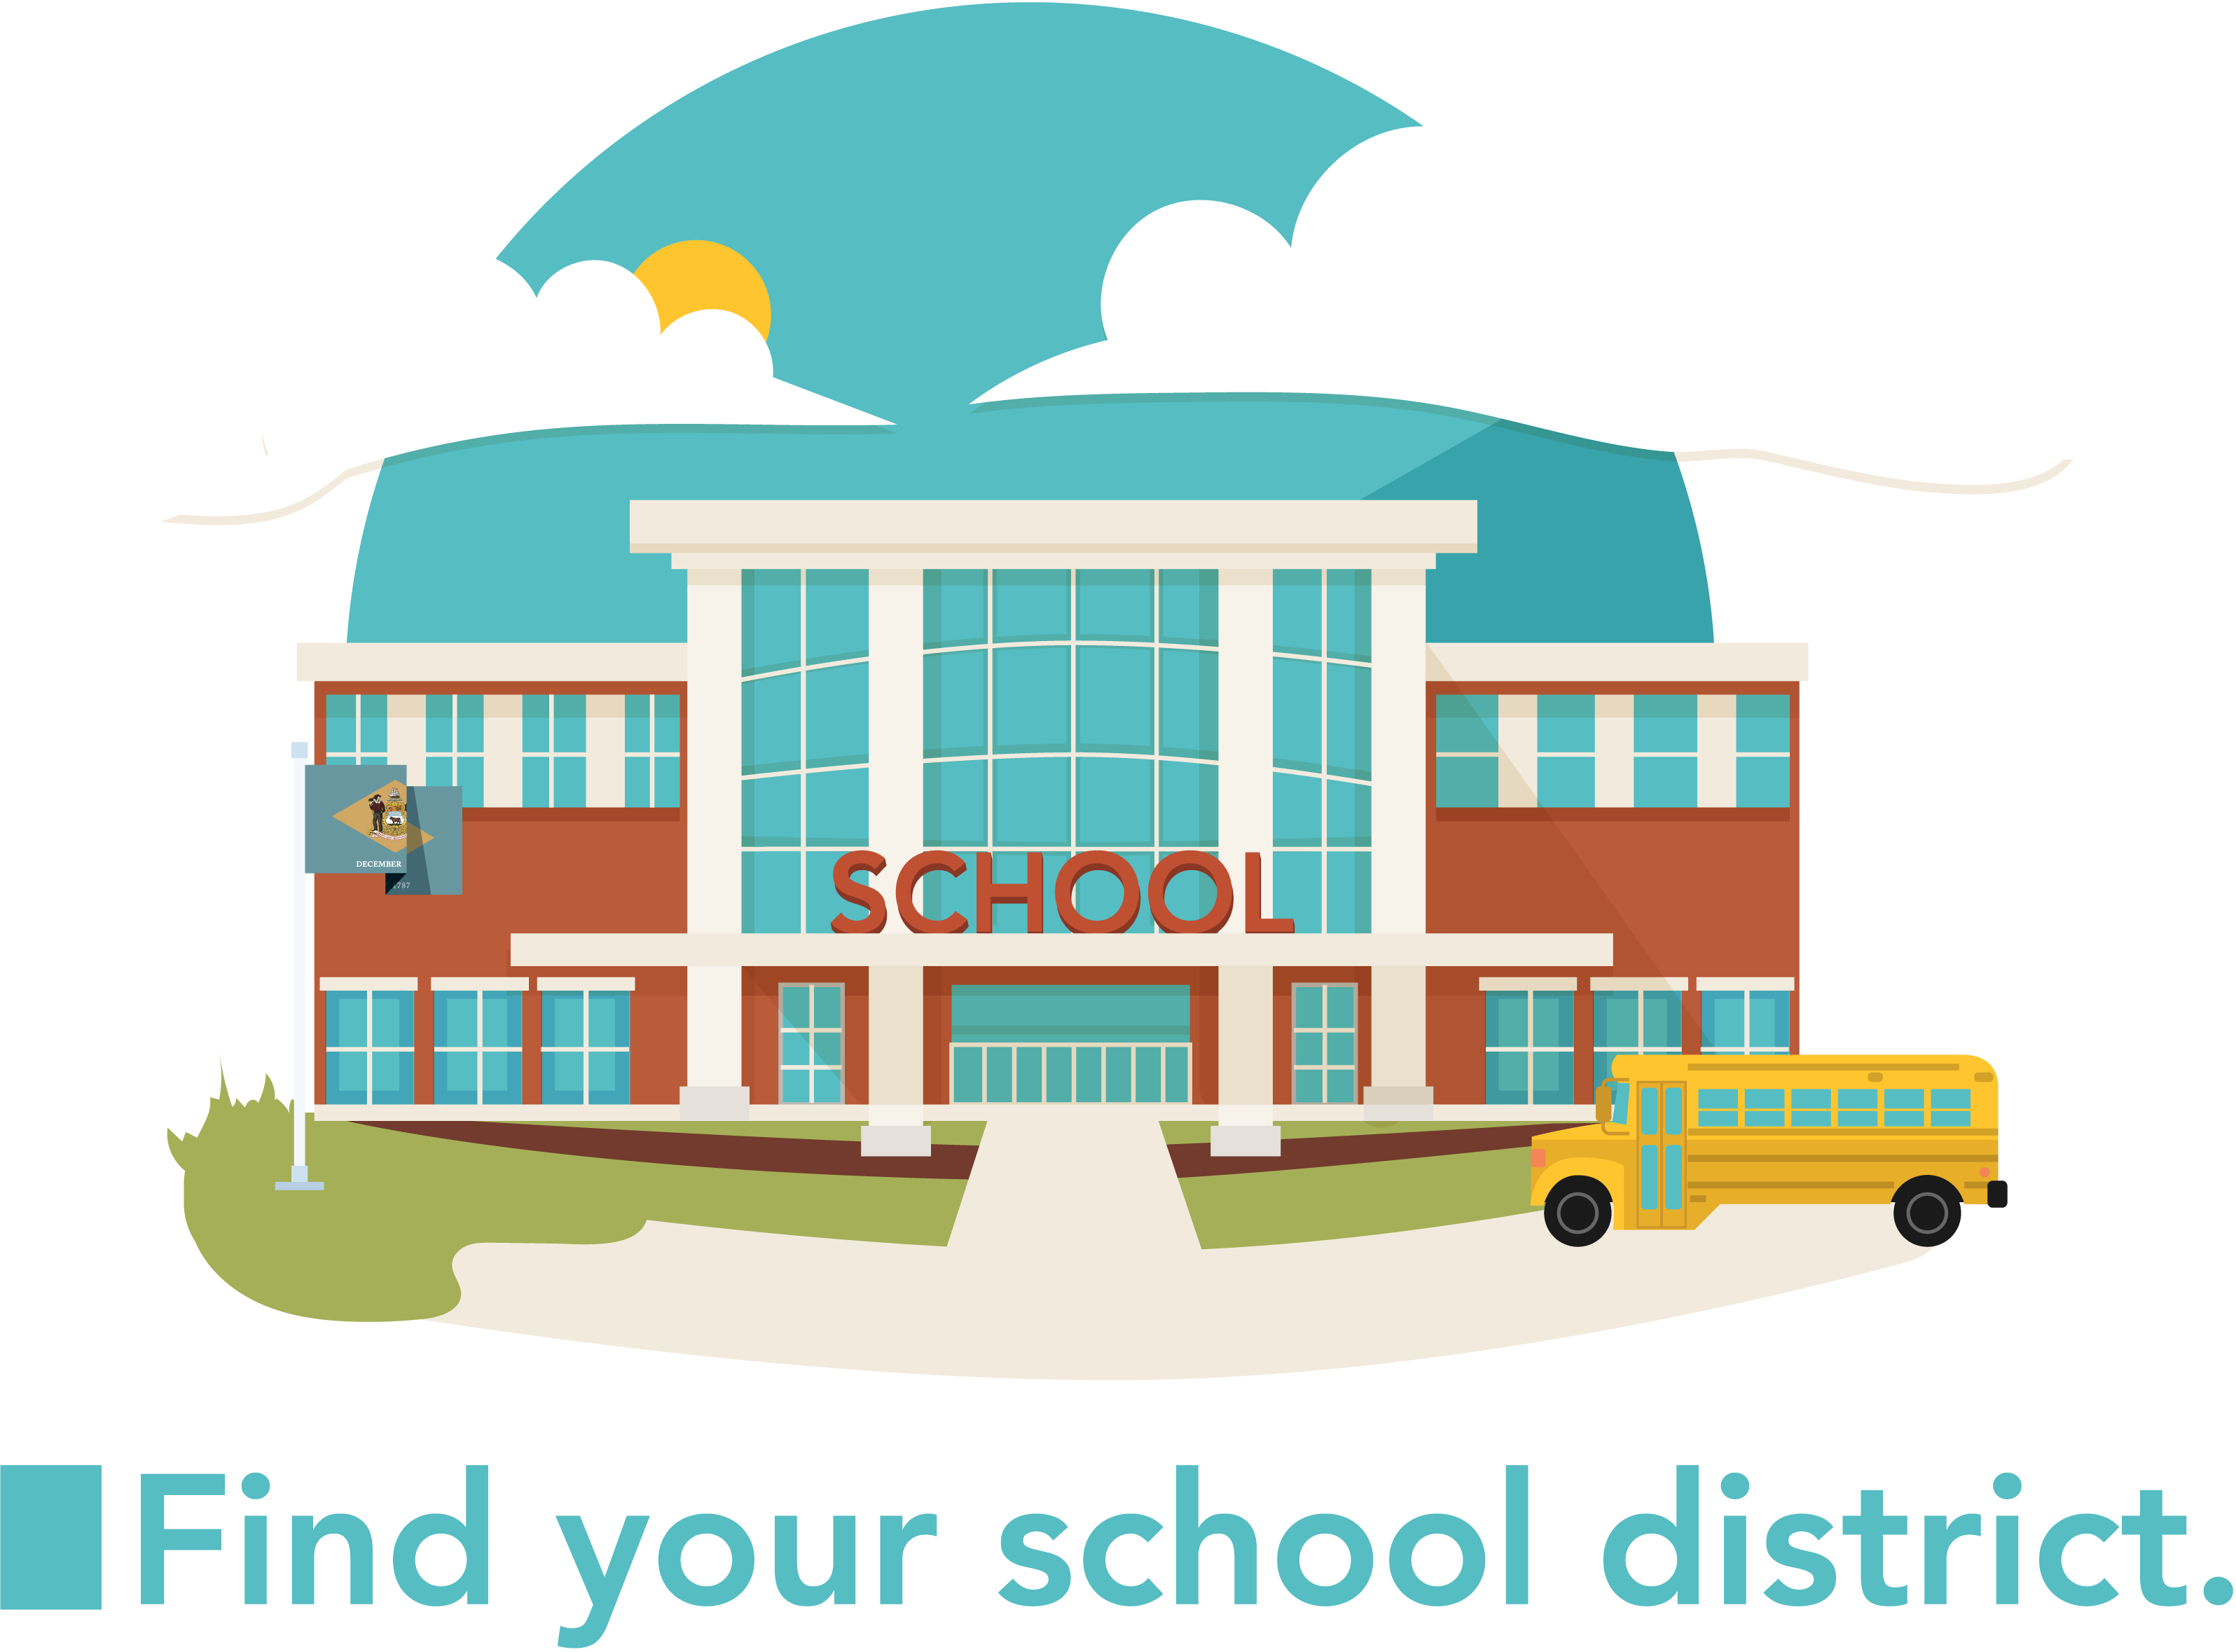 Graphic of a school building and a school bus.